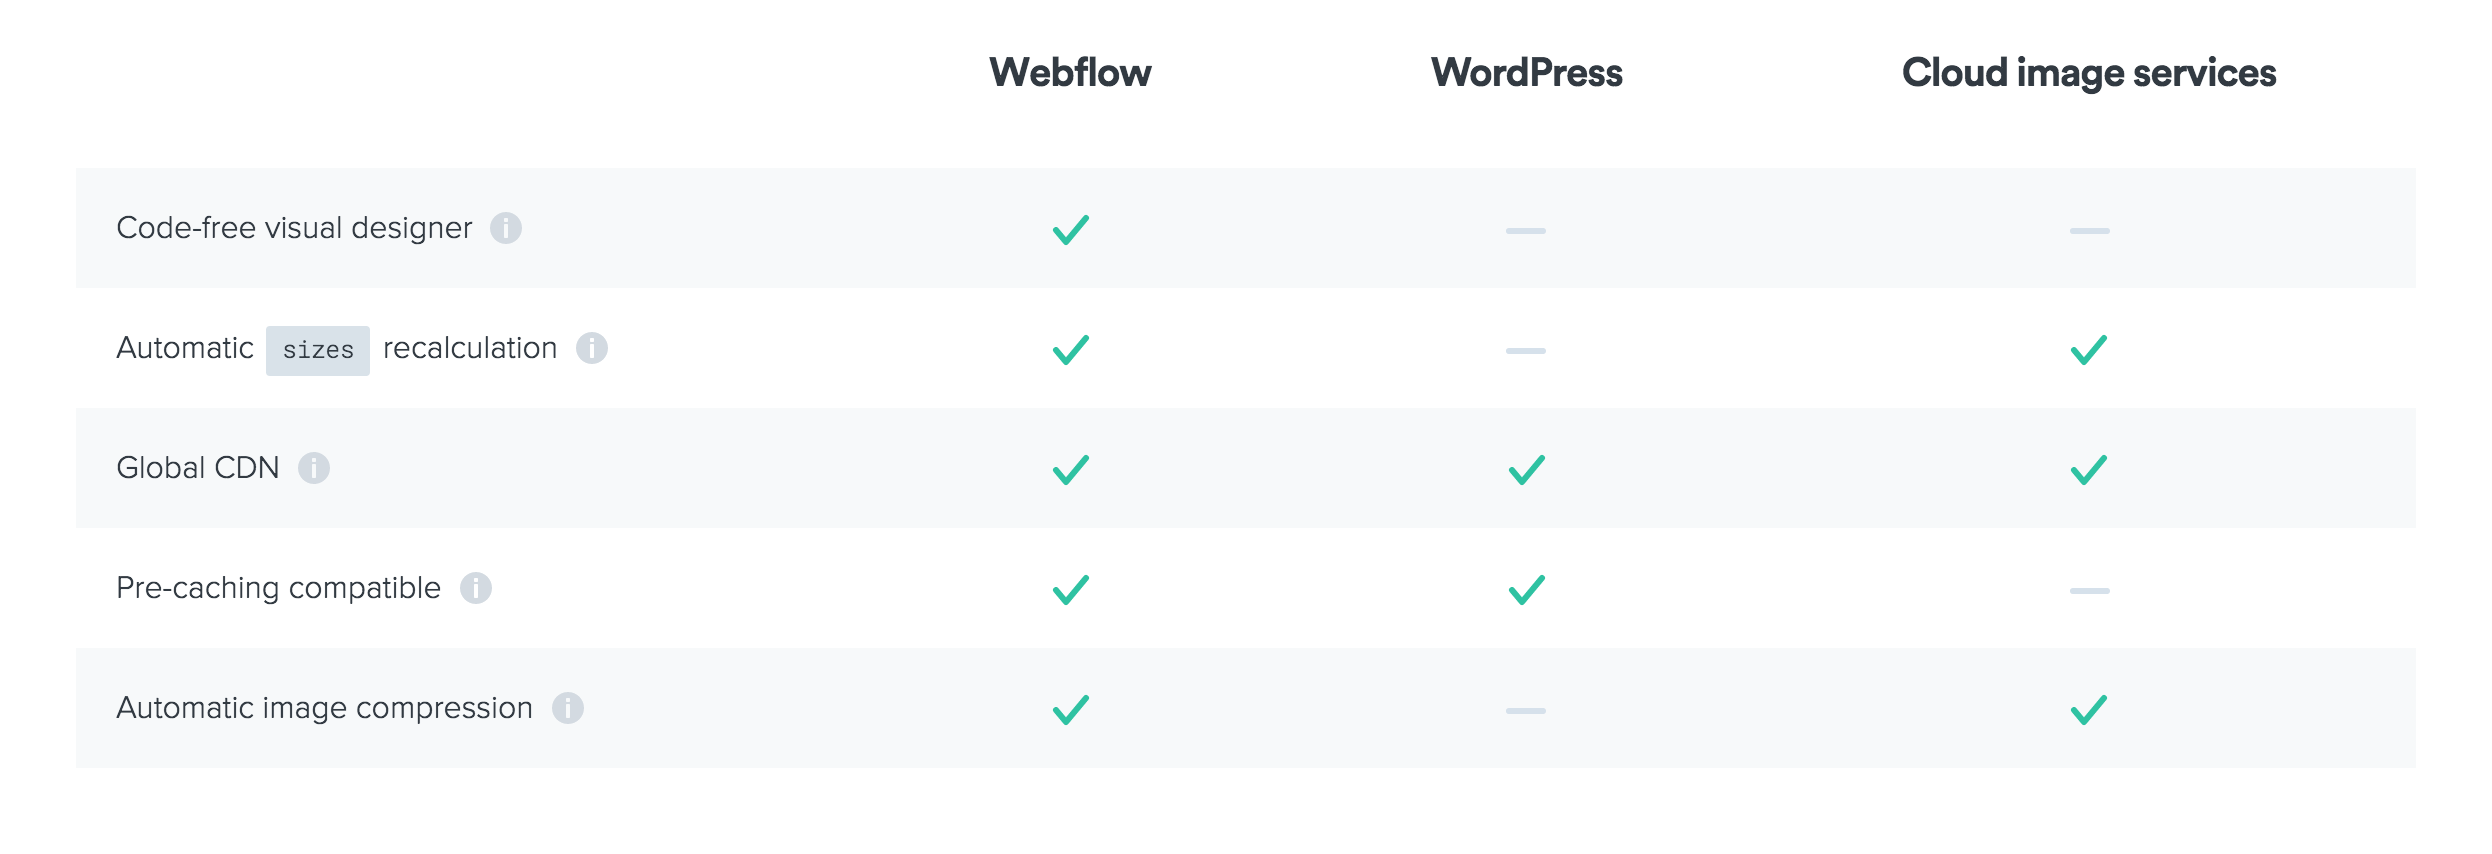 Webflow's approach to Responsive images, compared to WordPress and popular cloud image services.